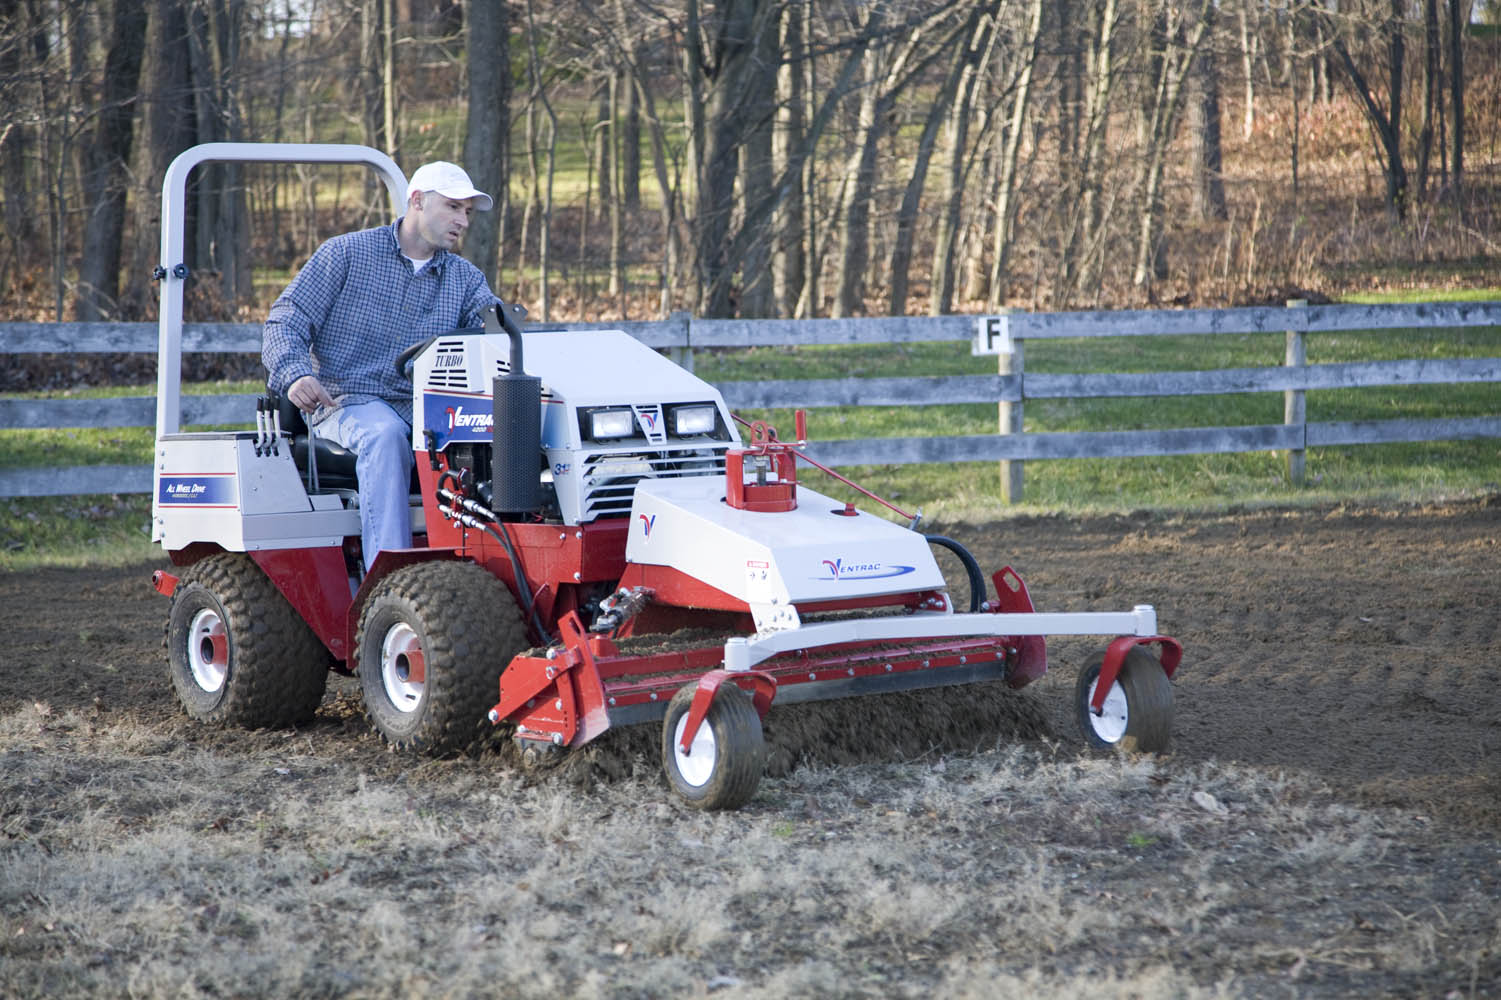 Ventrac Power Rake attachment and Tractor